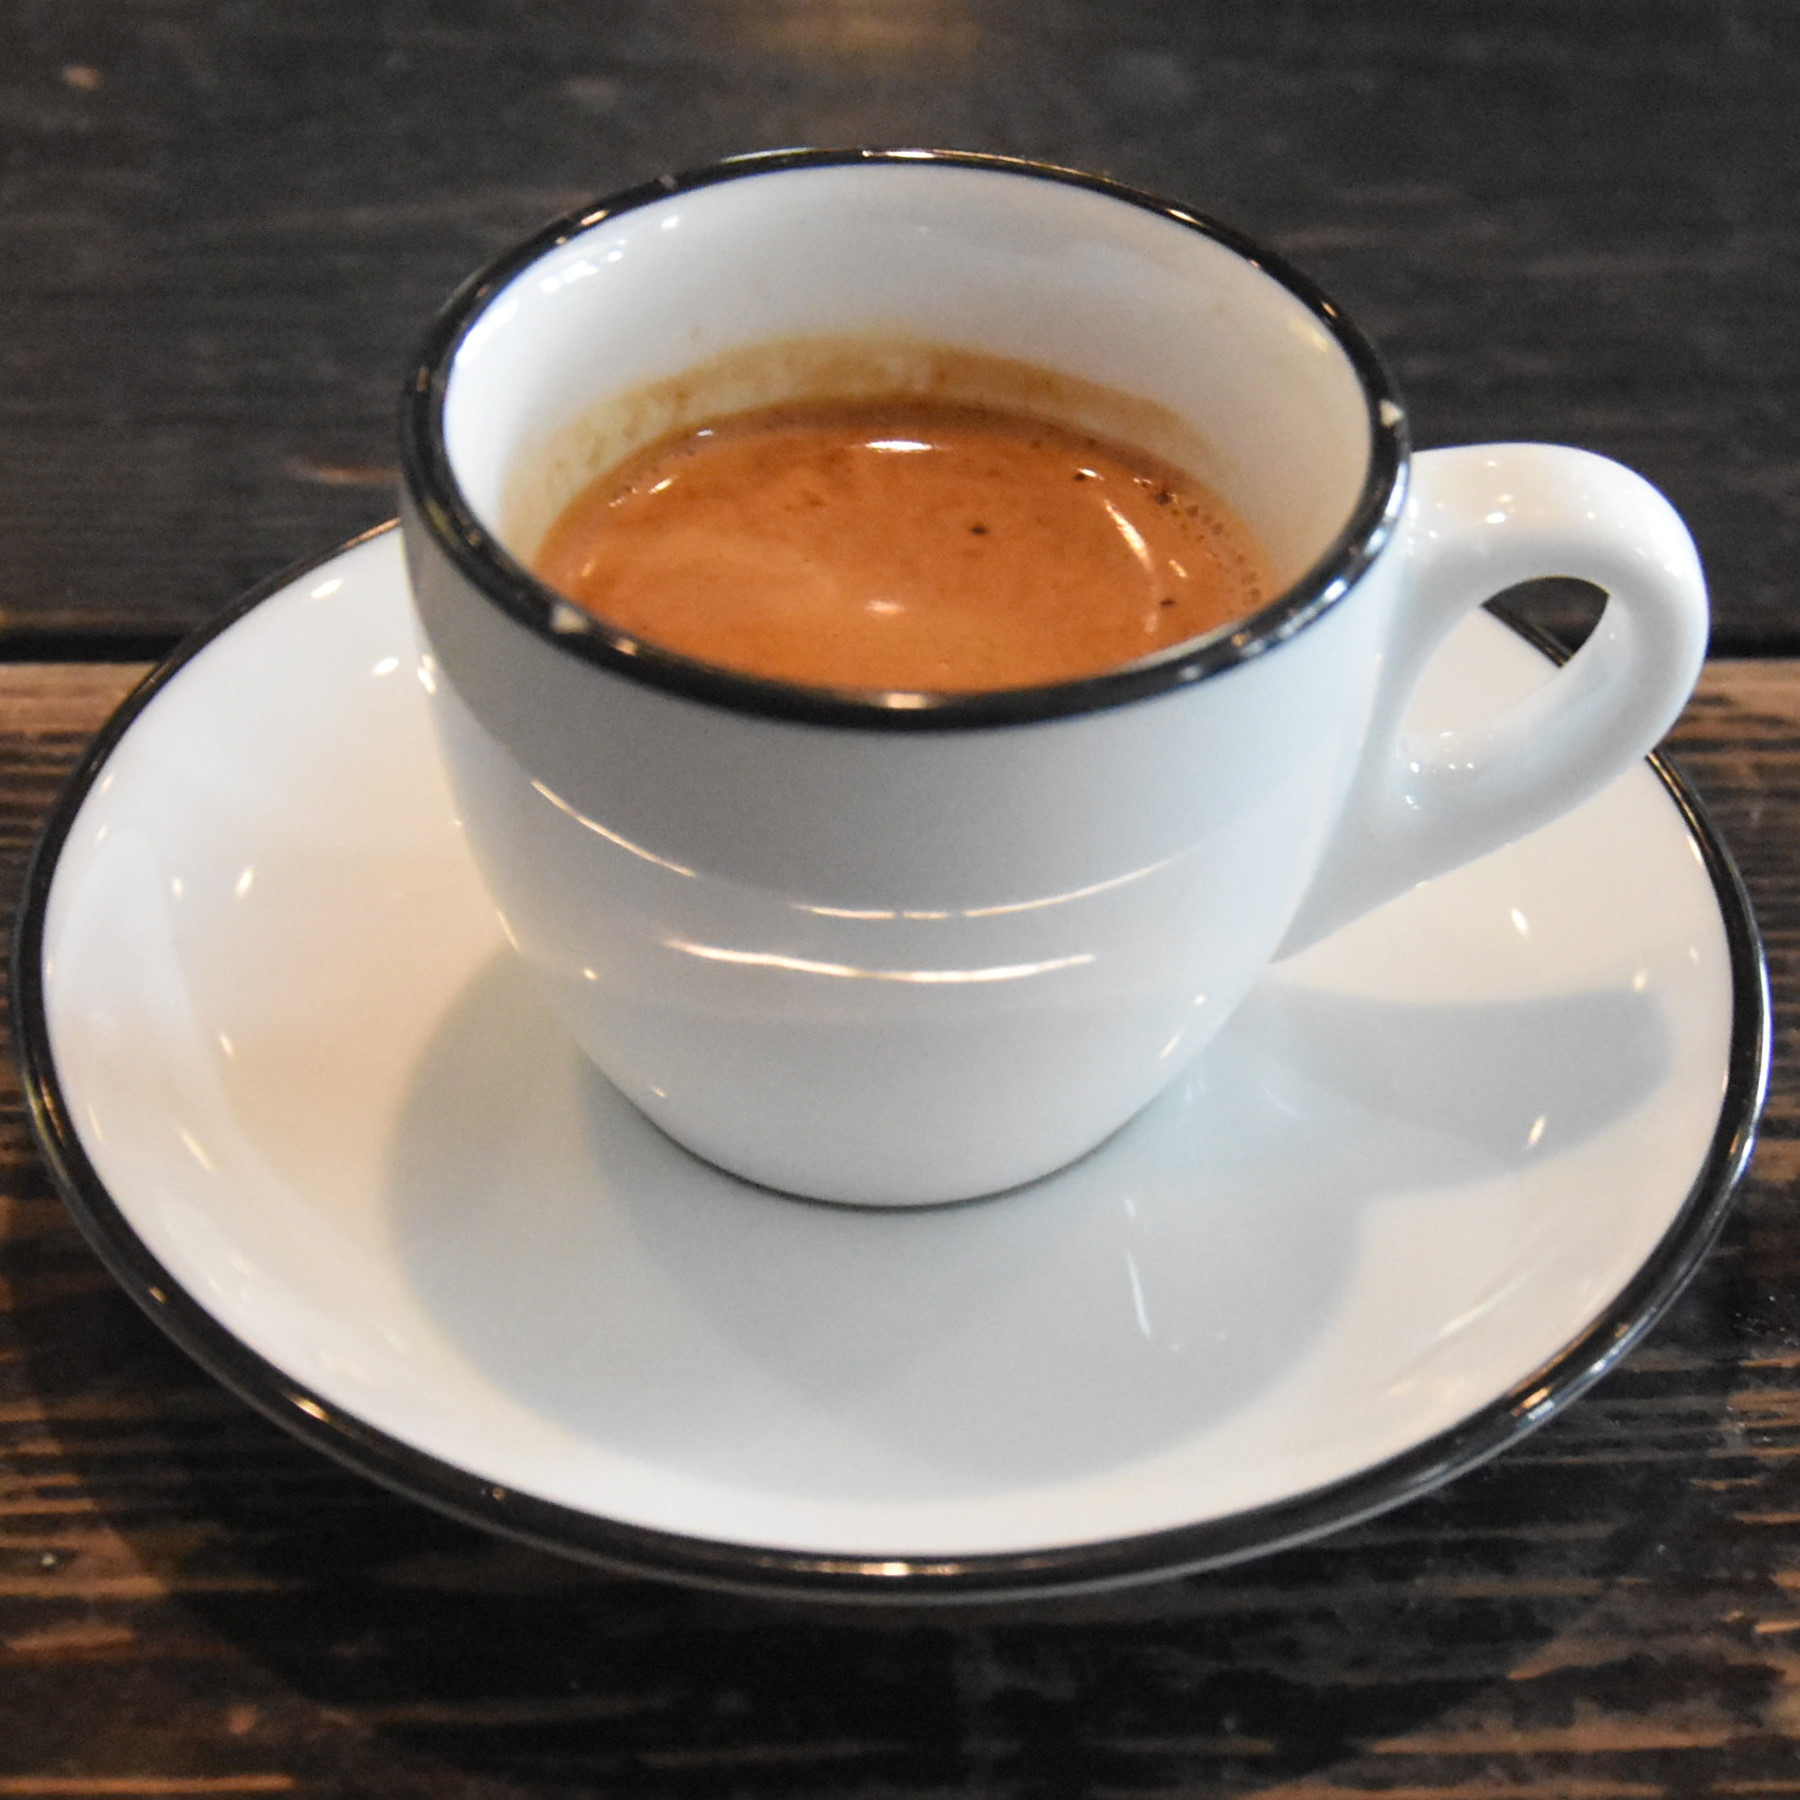 A Burundi single-origin espresso, served in a classic white cup at Gaslight Coffee Roasters in Chicago.